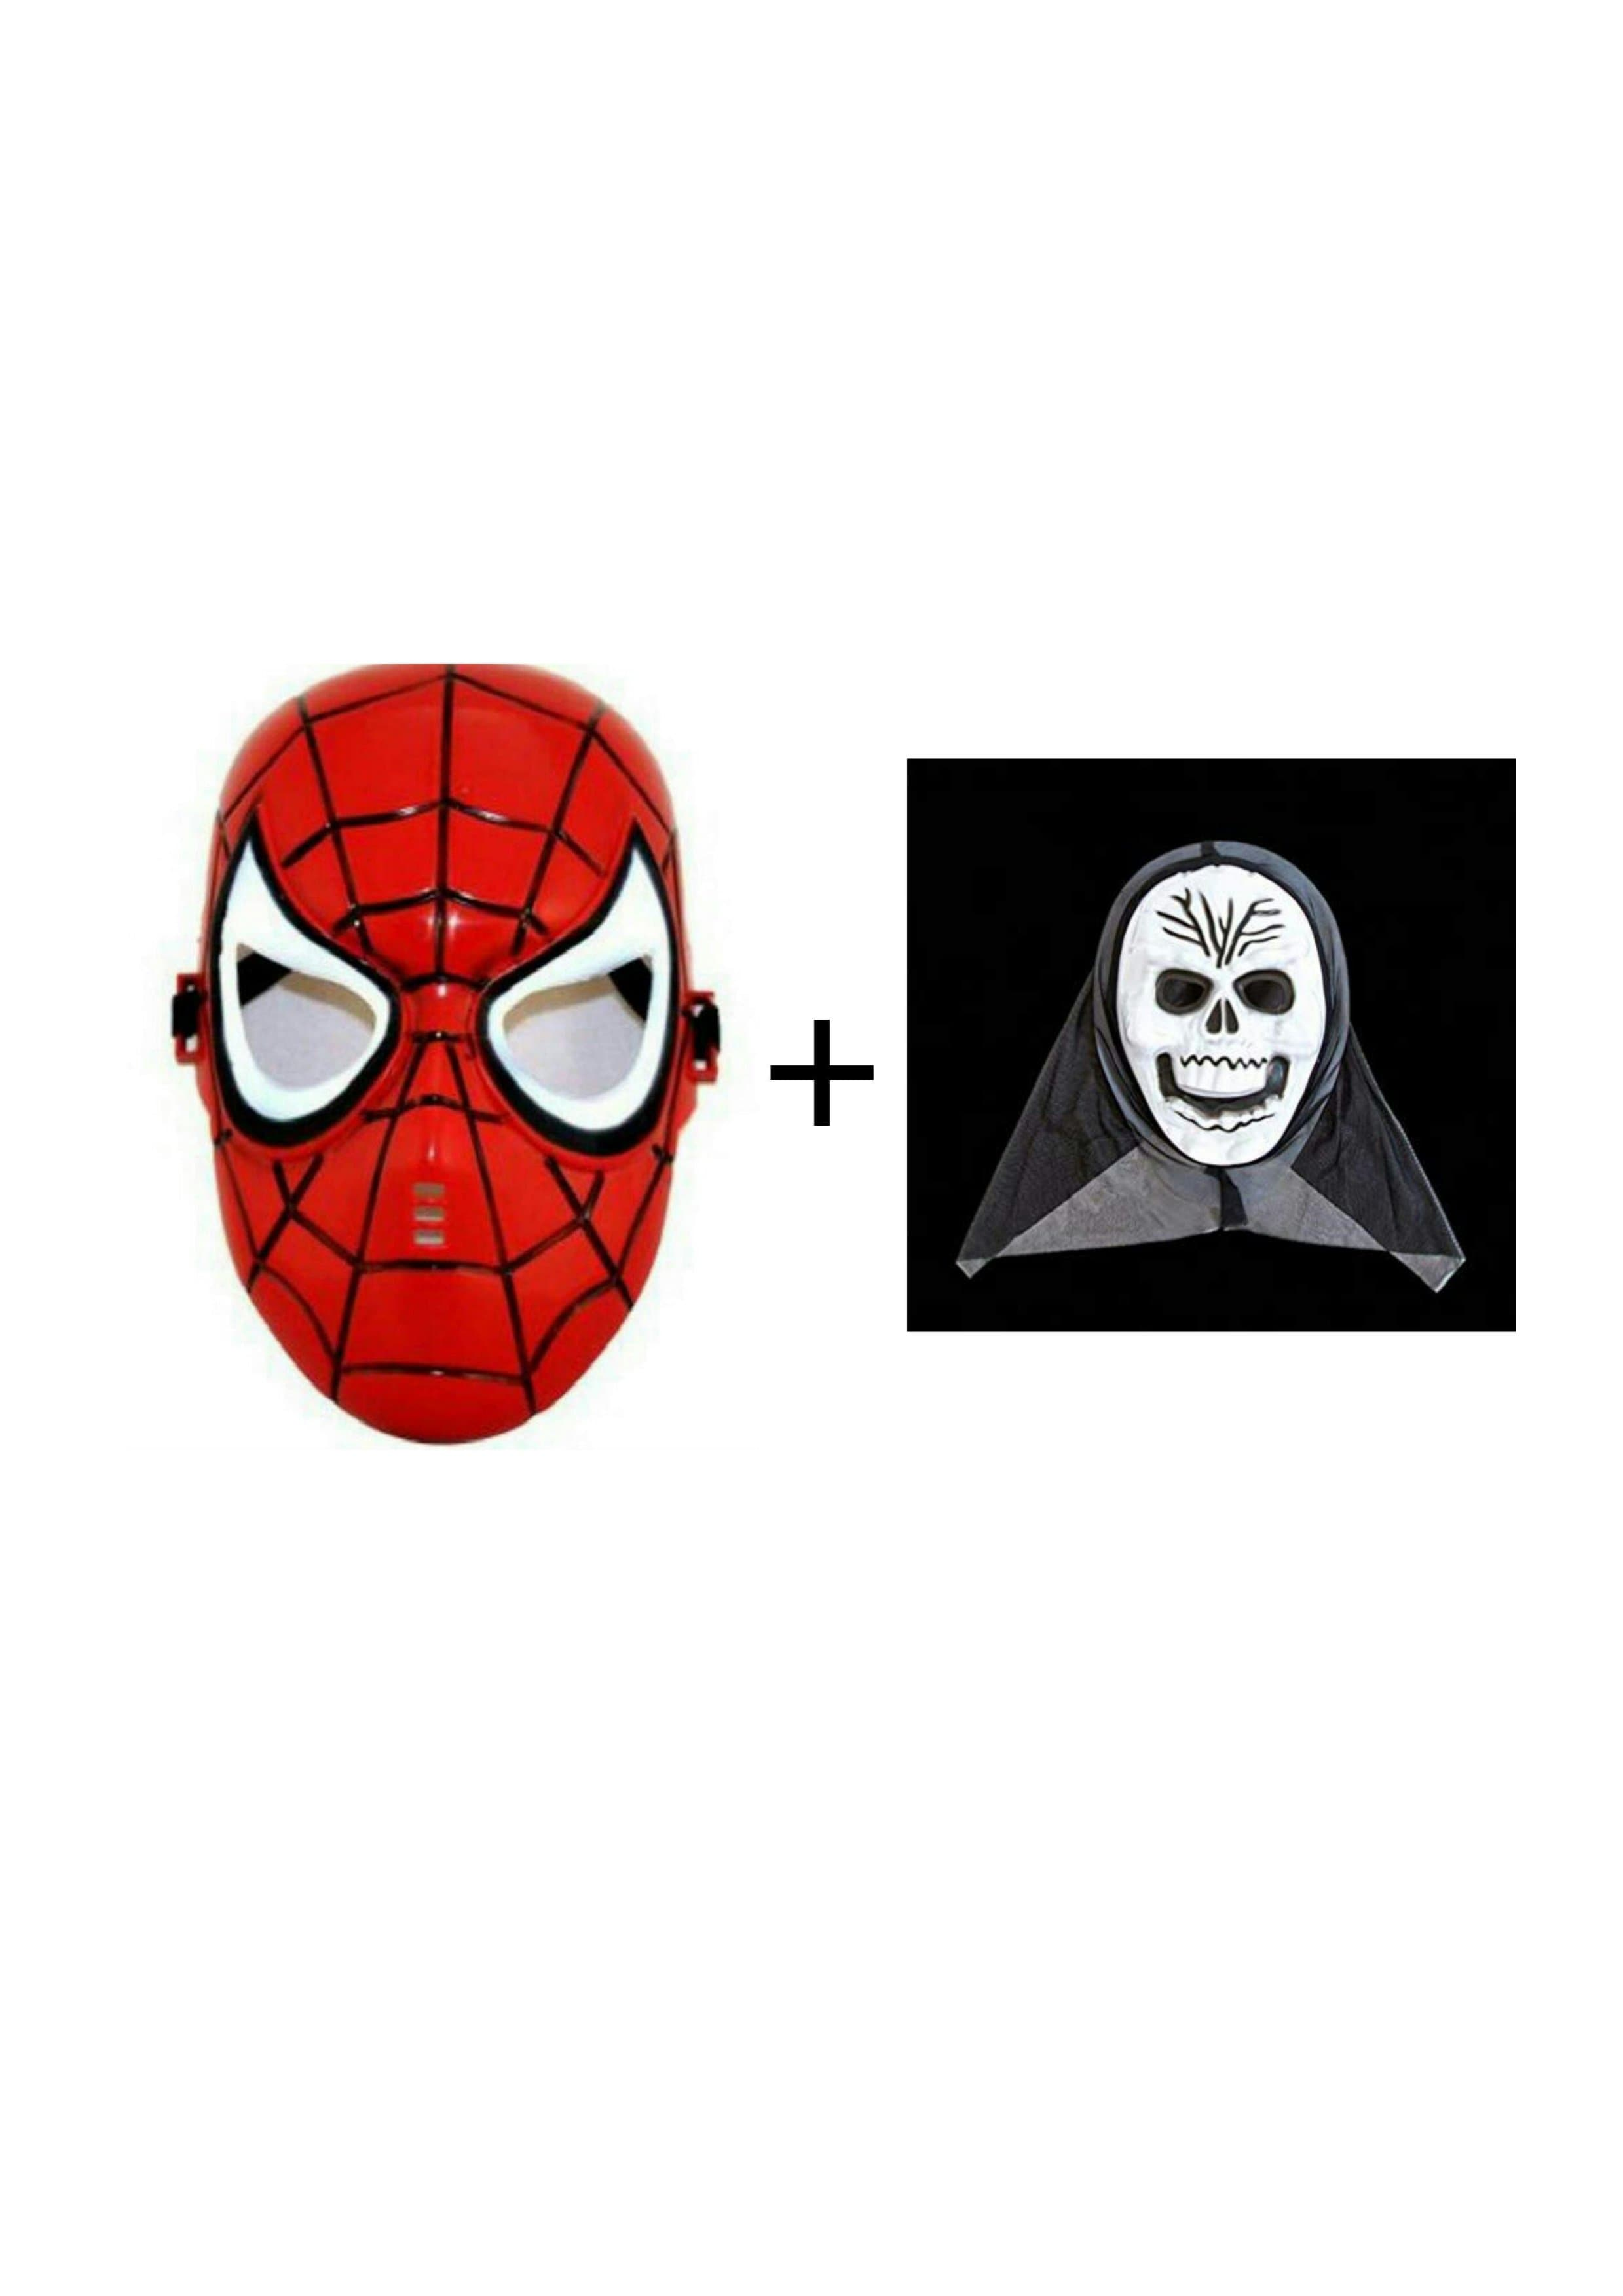 Scream Mask 3 + Spiderman